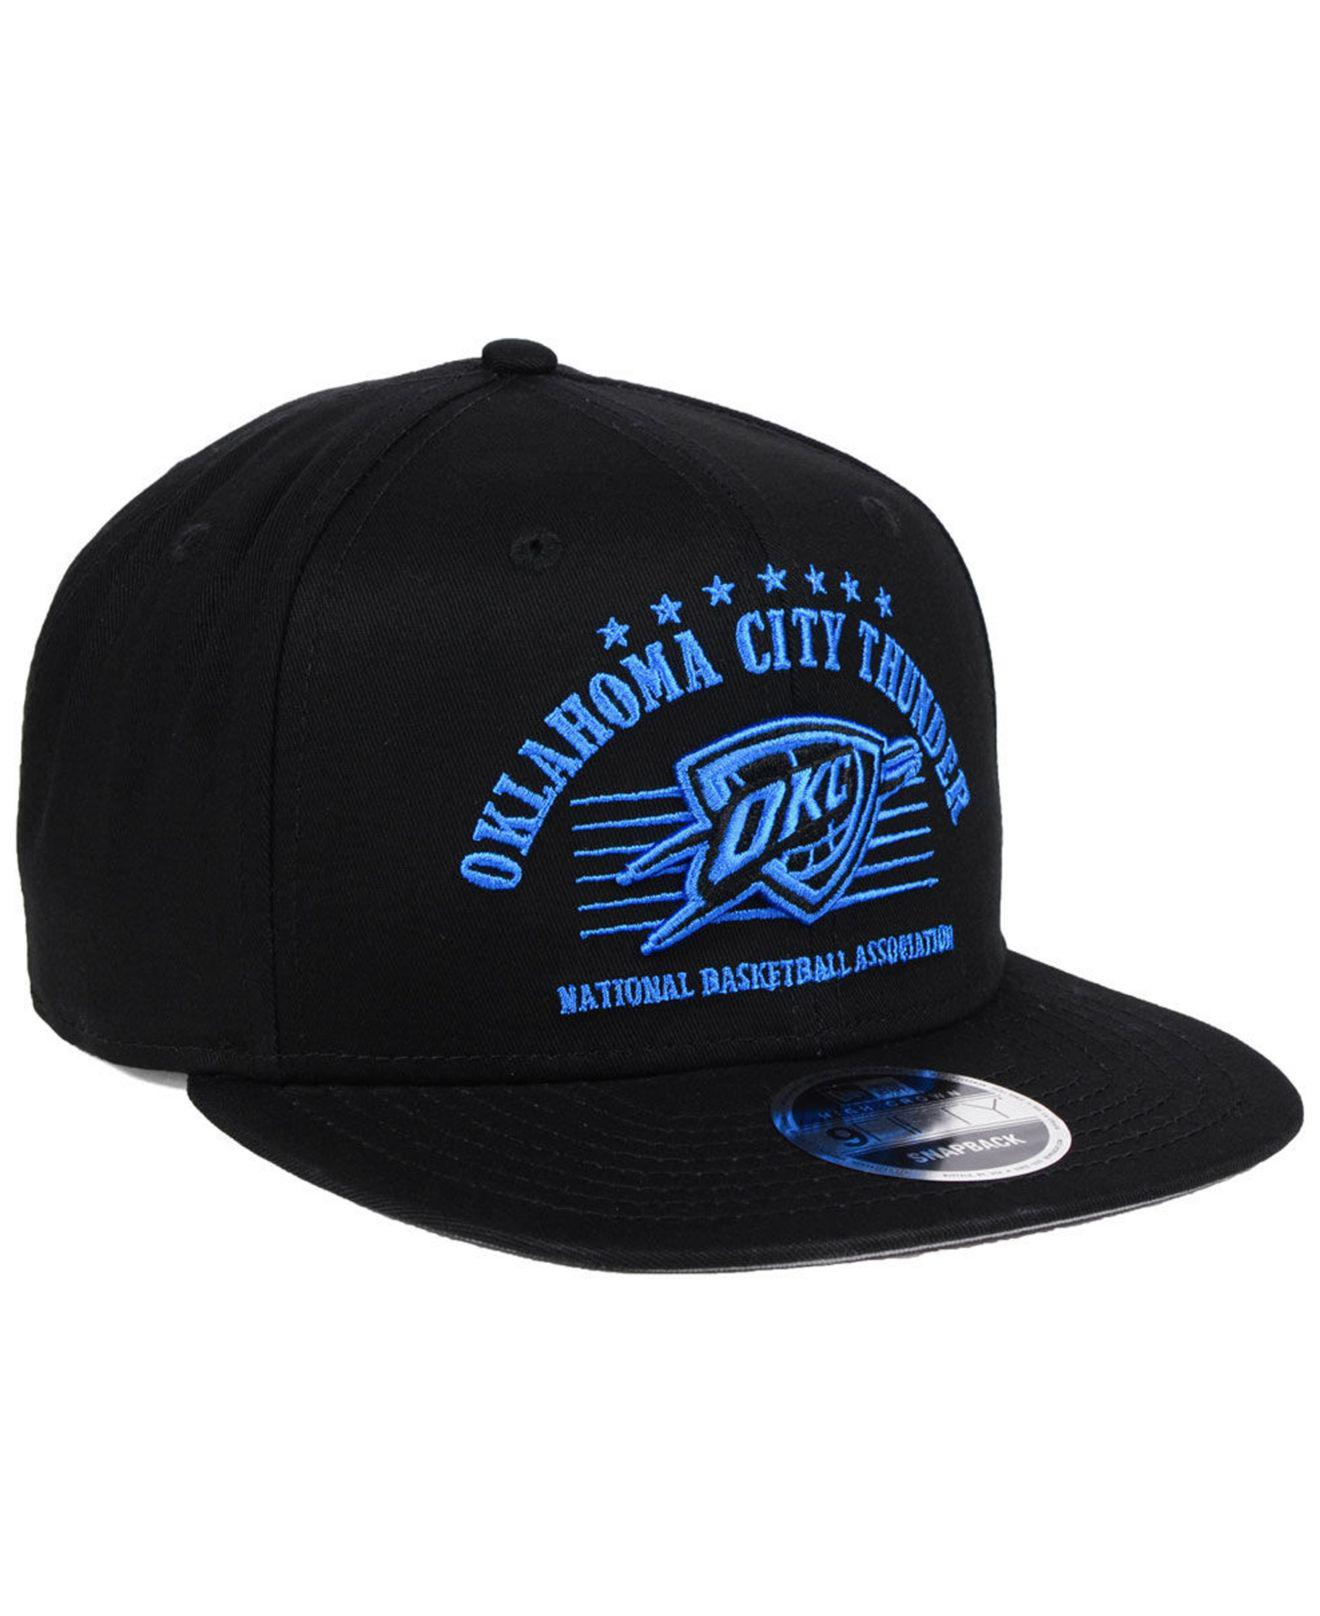 new concept 13a21 f27ff ... france oklahoma city thunder retro arch 9fifty snapback cap for men lyst.  view fullscreen 9fda4